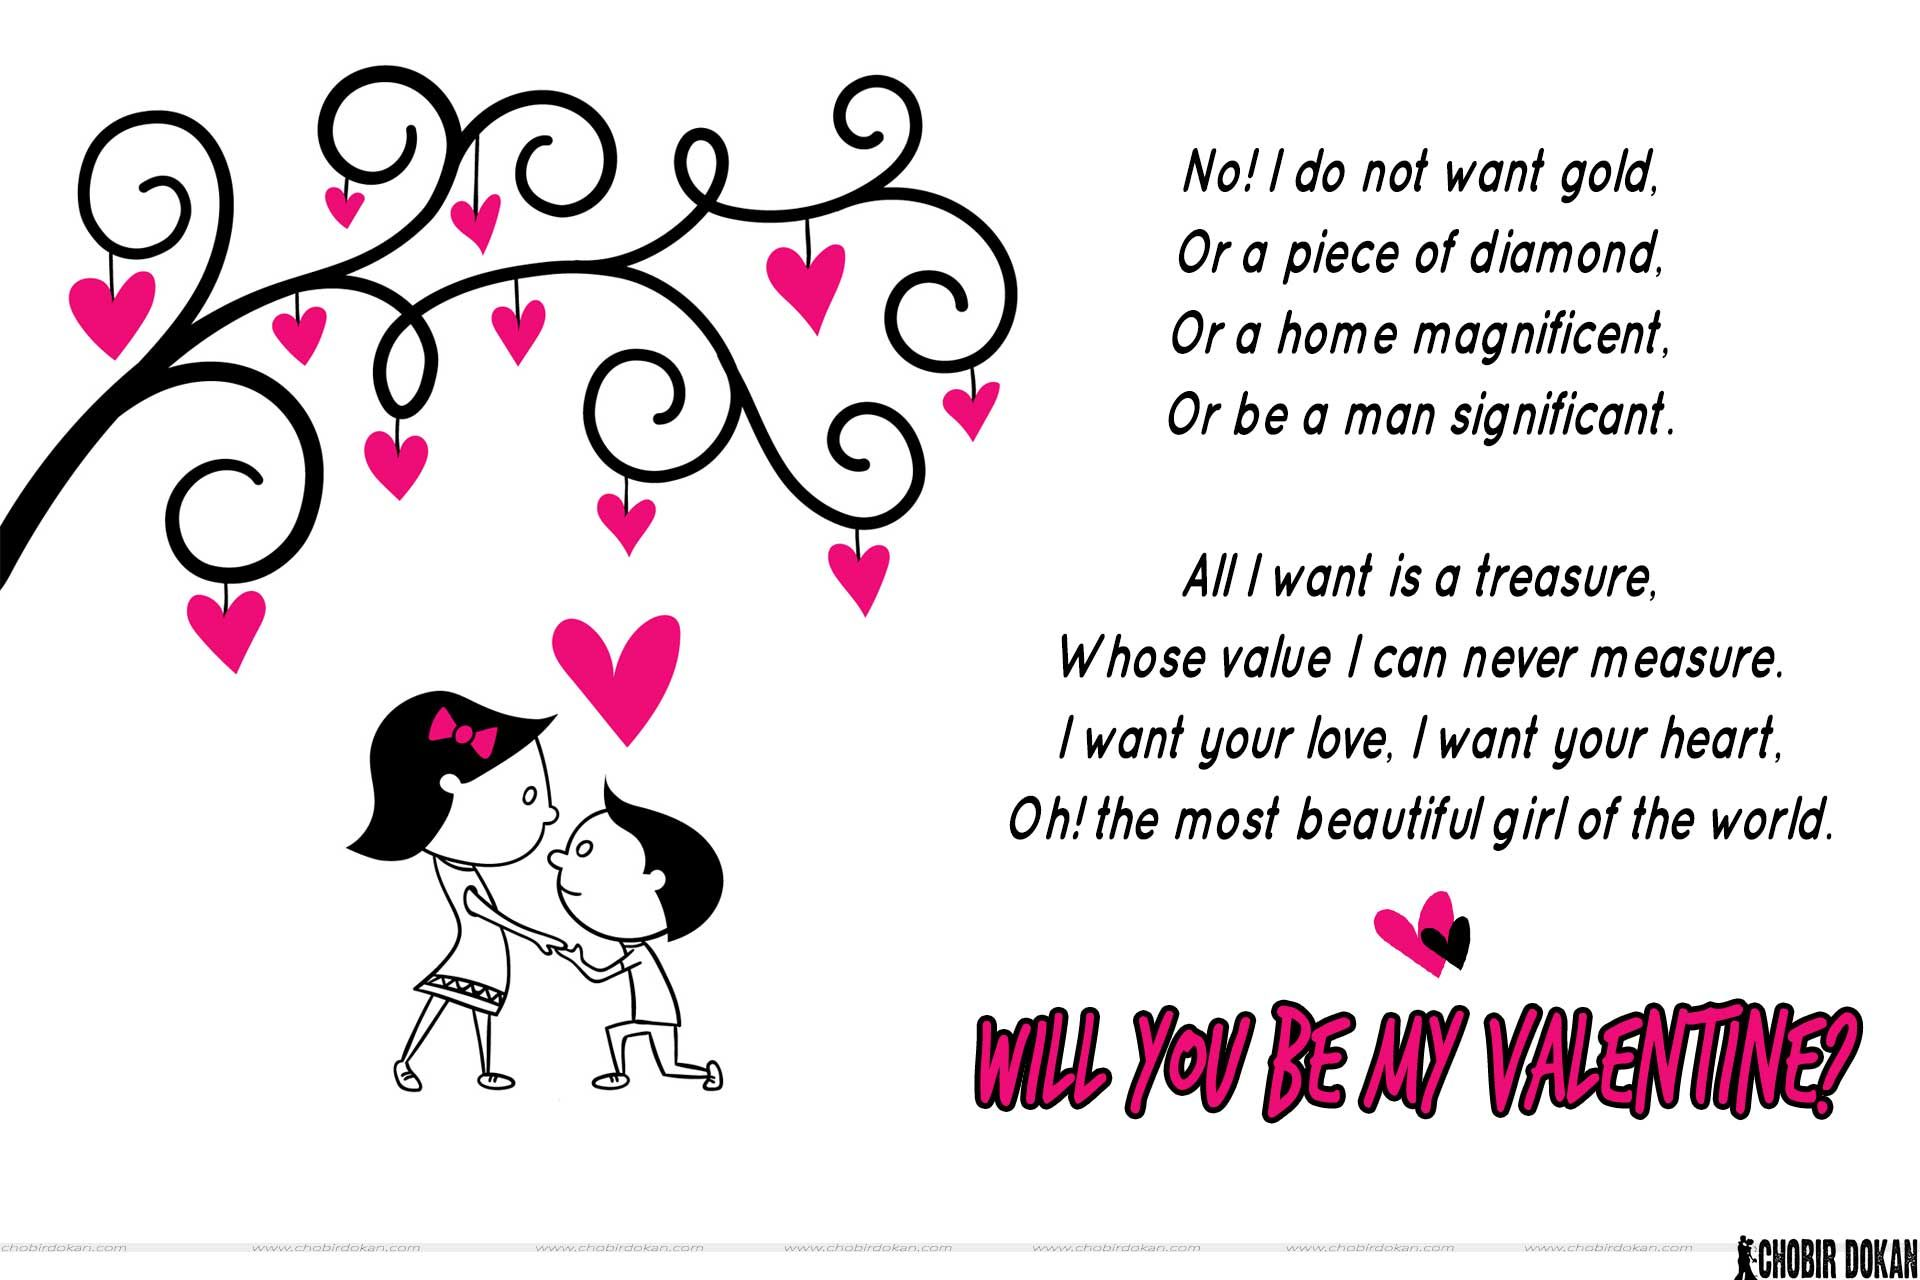 Will You Be My Valentine Poems For Him Her With Images February 2016 Valentines Poems Valentines Day Quotes For Him Valentine Poems For Him